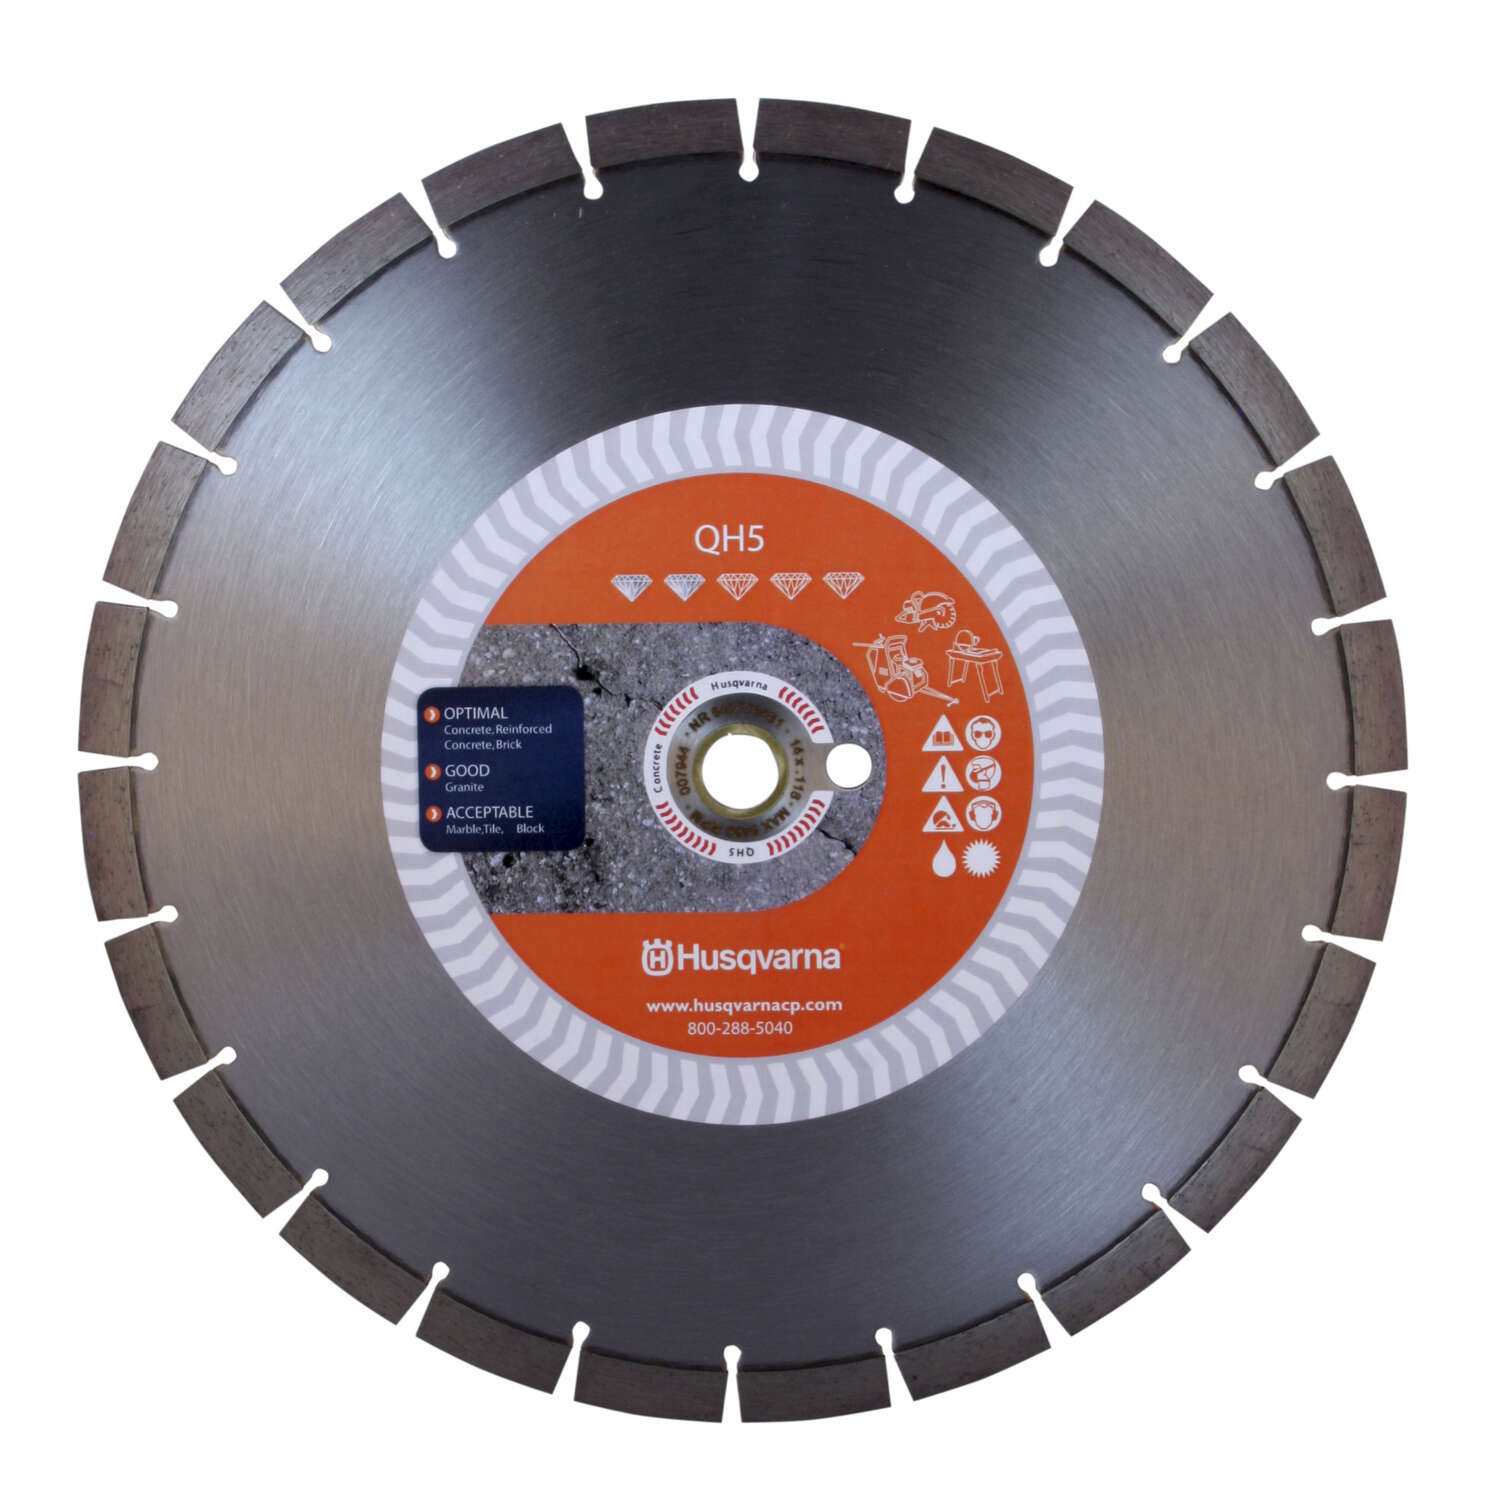 Husqvarna  12 in. Dia. x 1 in./20 mm   QH5  Diamond  Segmented Rim Diamond Saw Blade  24 teeth 1 pk